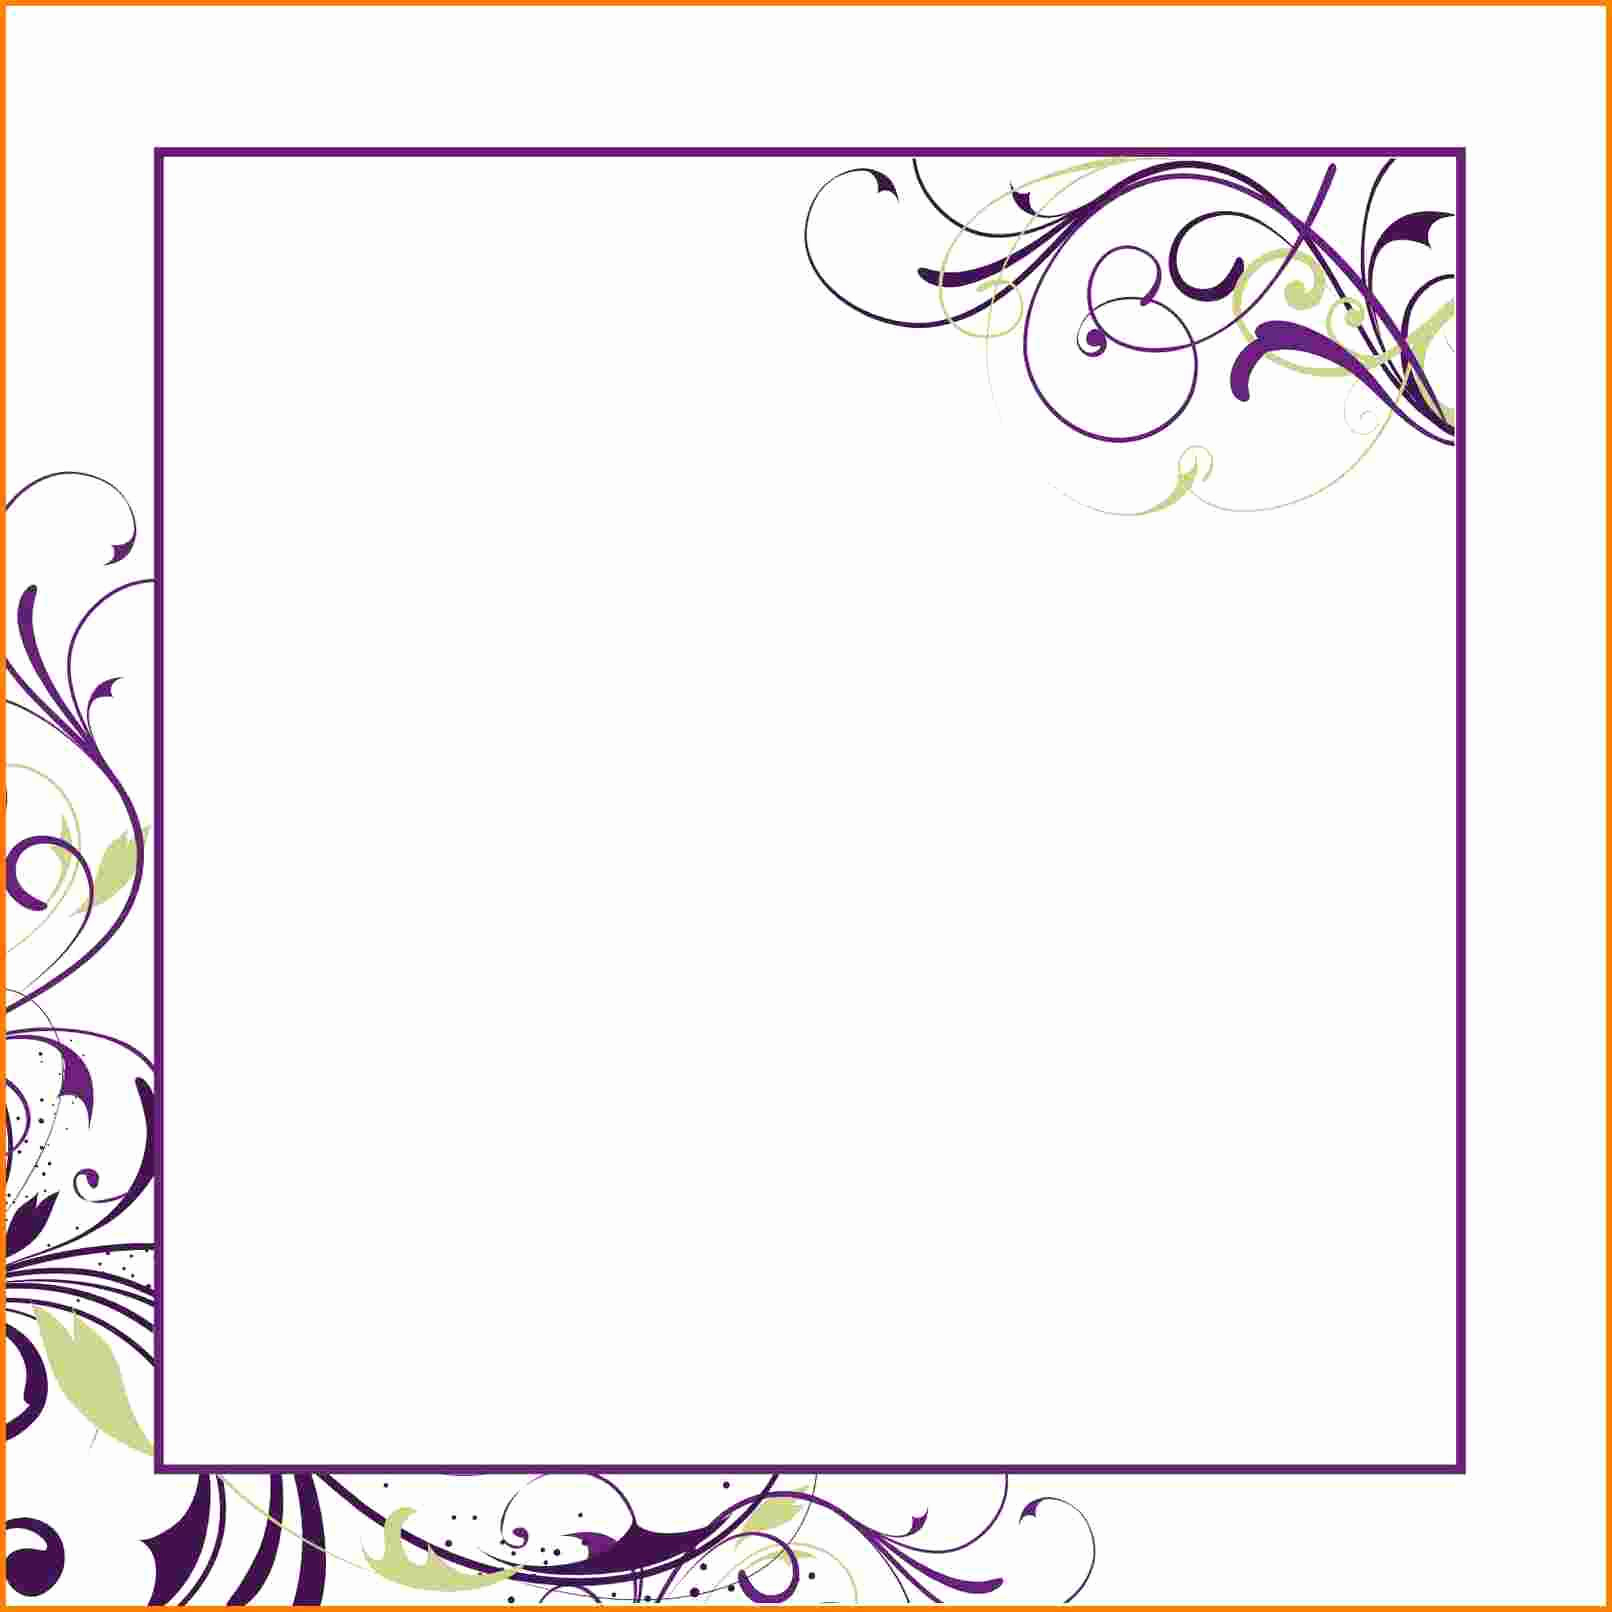 Blank Invitation Templates Free Download Fresh Birthday Invitation Blank Invitation Templates Superb